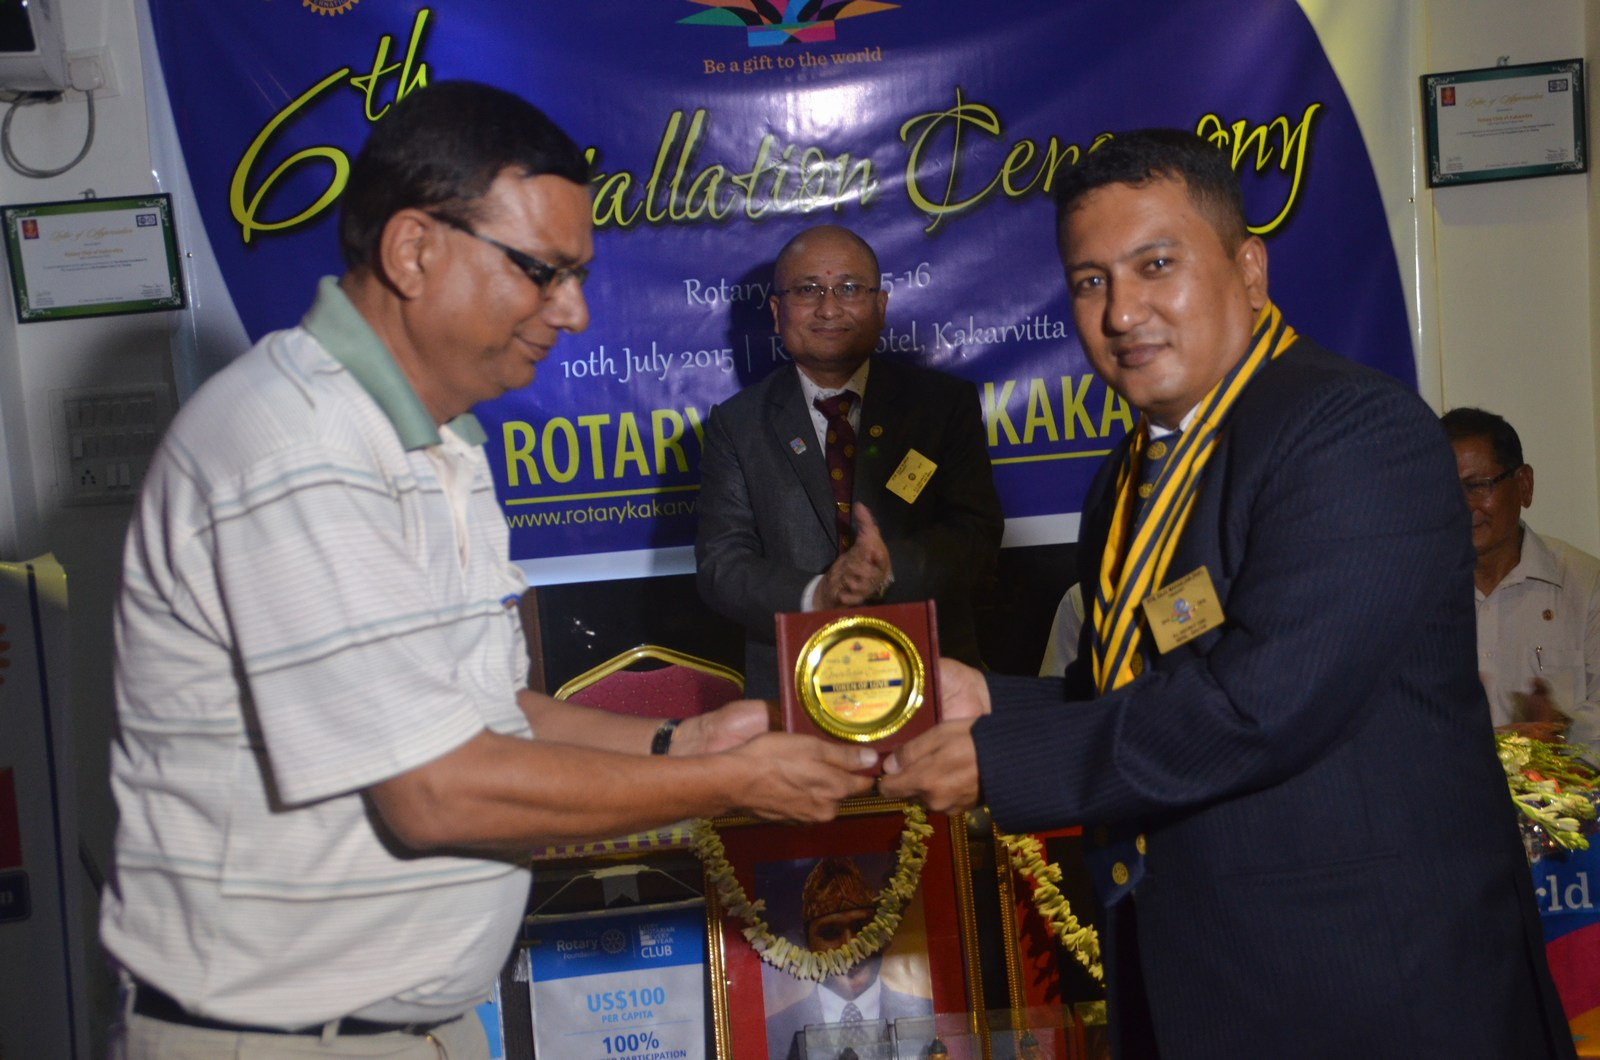 6th Installation Ceremony 2015 16 Rotary Club Of Kakarvitta 52